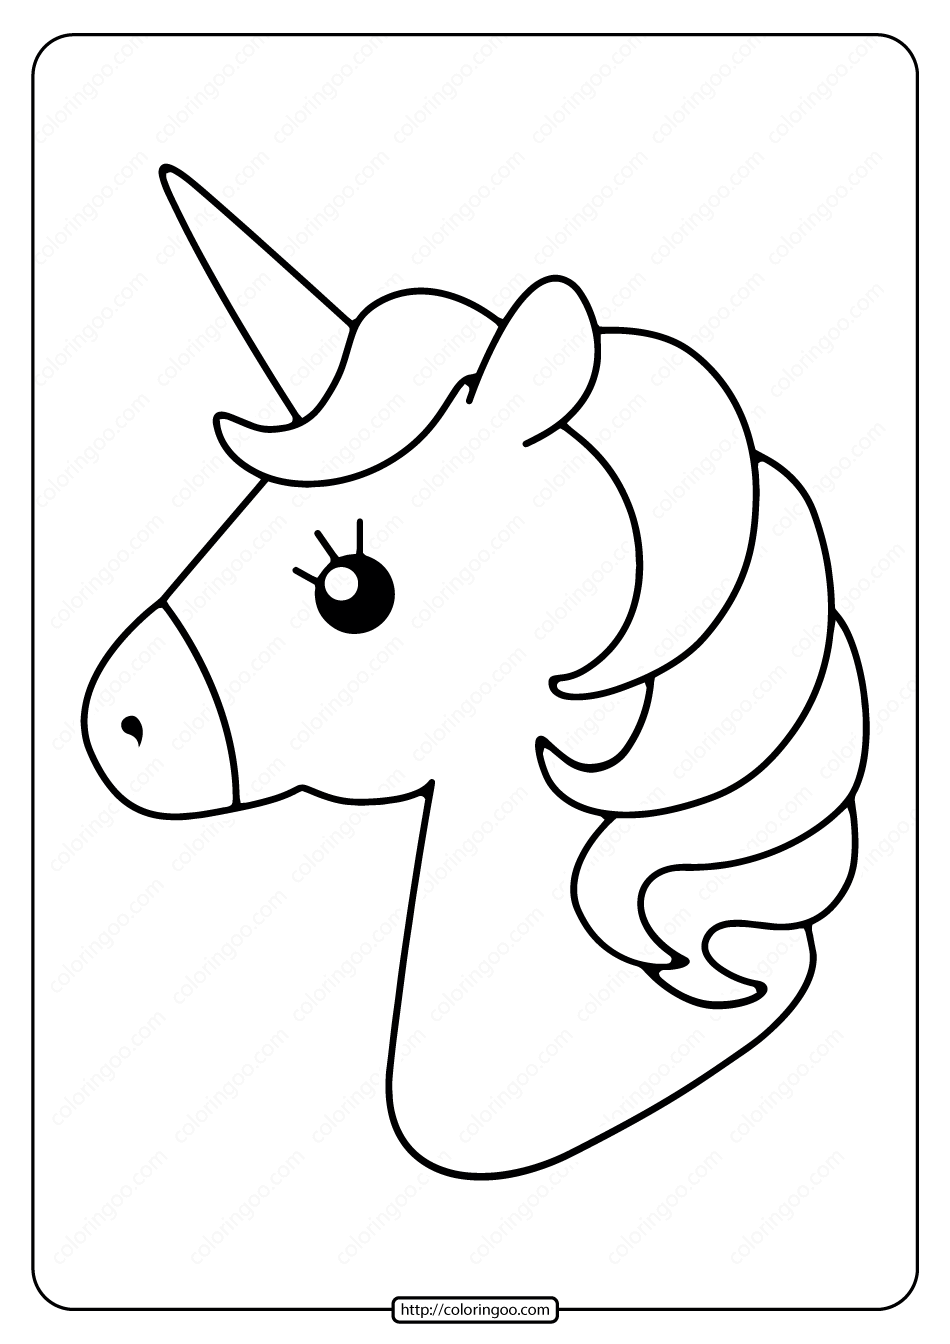 Free Printable Cute Unicorns Pdf Coloring Page Unicorn Coloring Pages Free Kids Coloring Pages Cute Coloring Pages